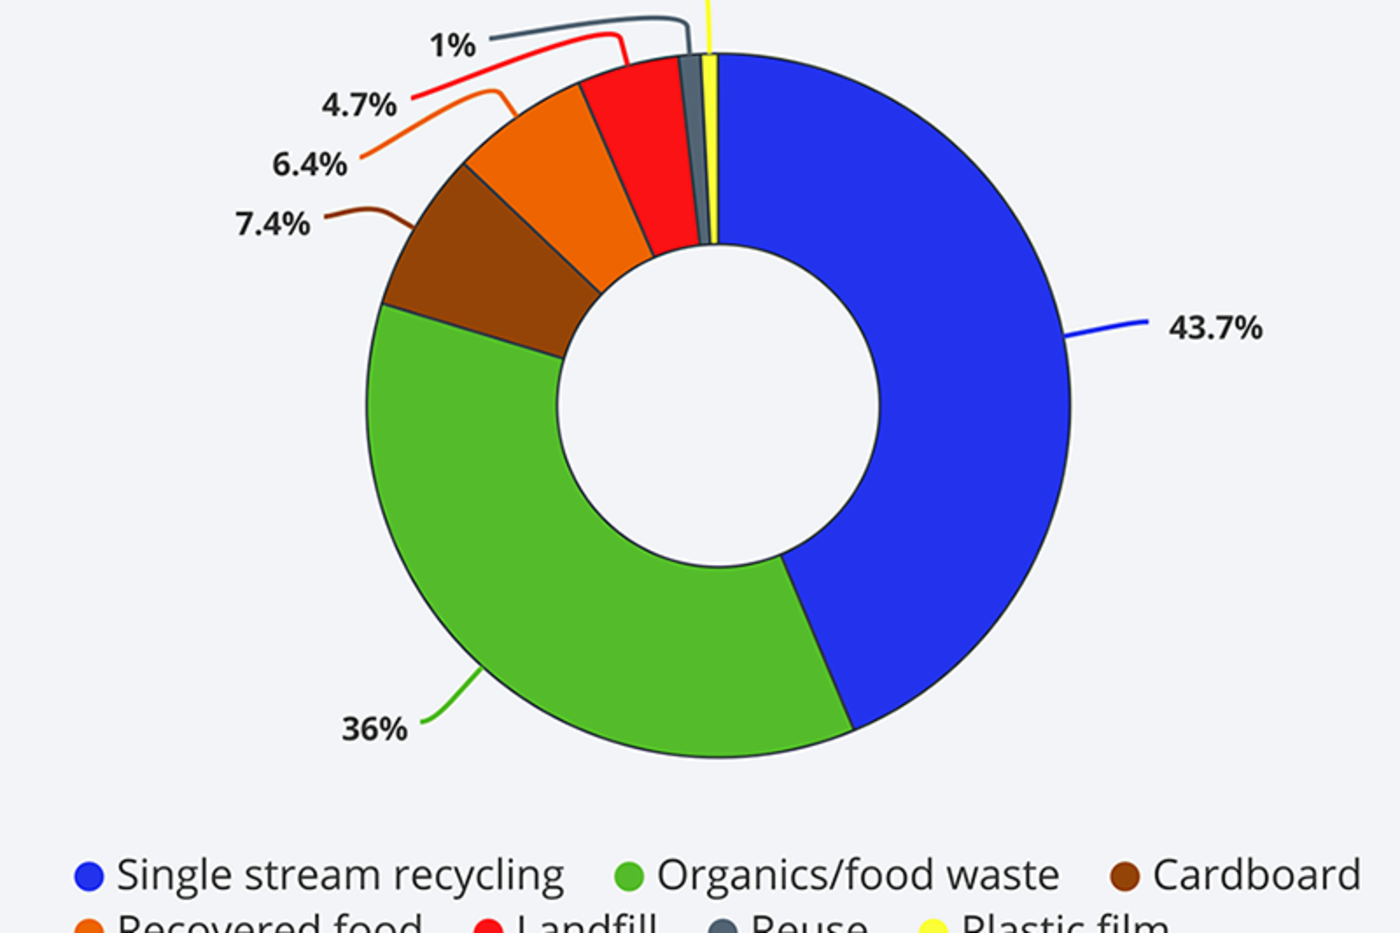 A pie chart showing the different materials that were diverted from landfill. The largest is Recycling, at 43%, followed by Organics/food waste at 36% percent.